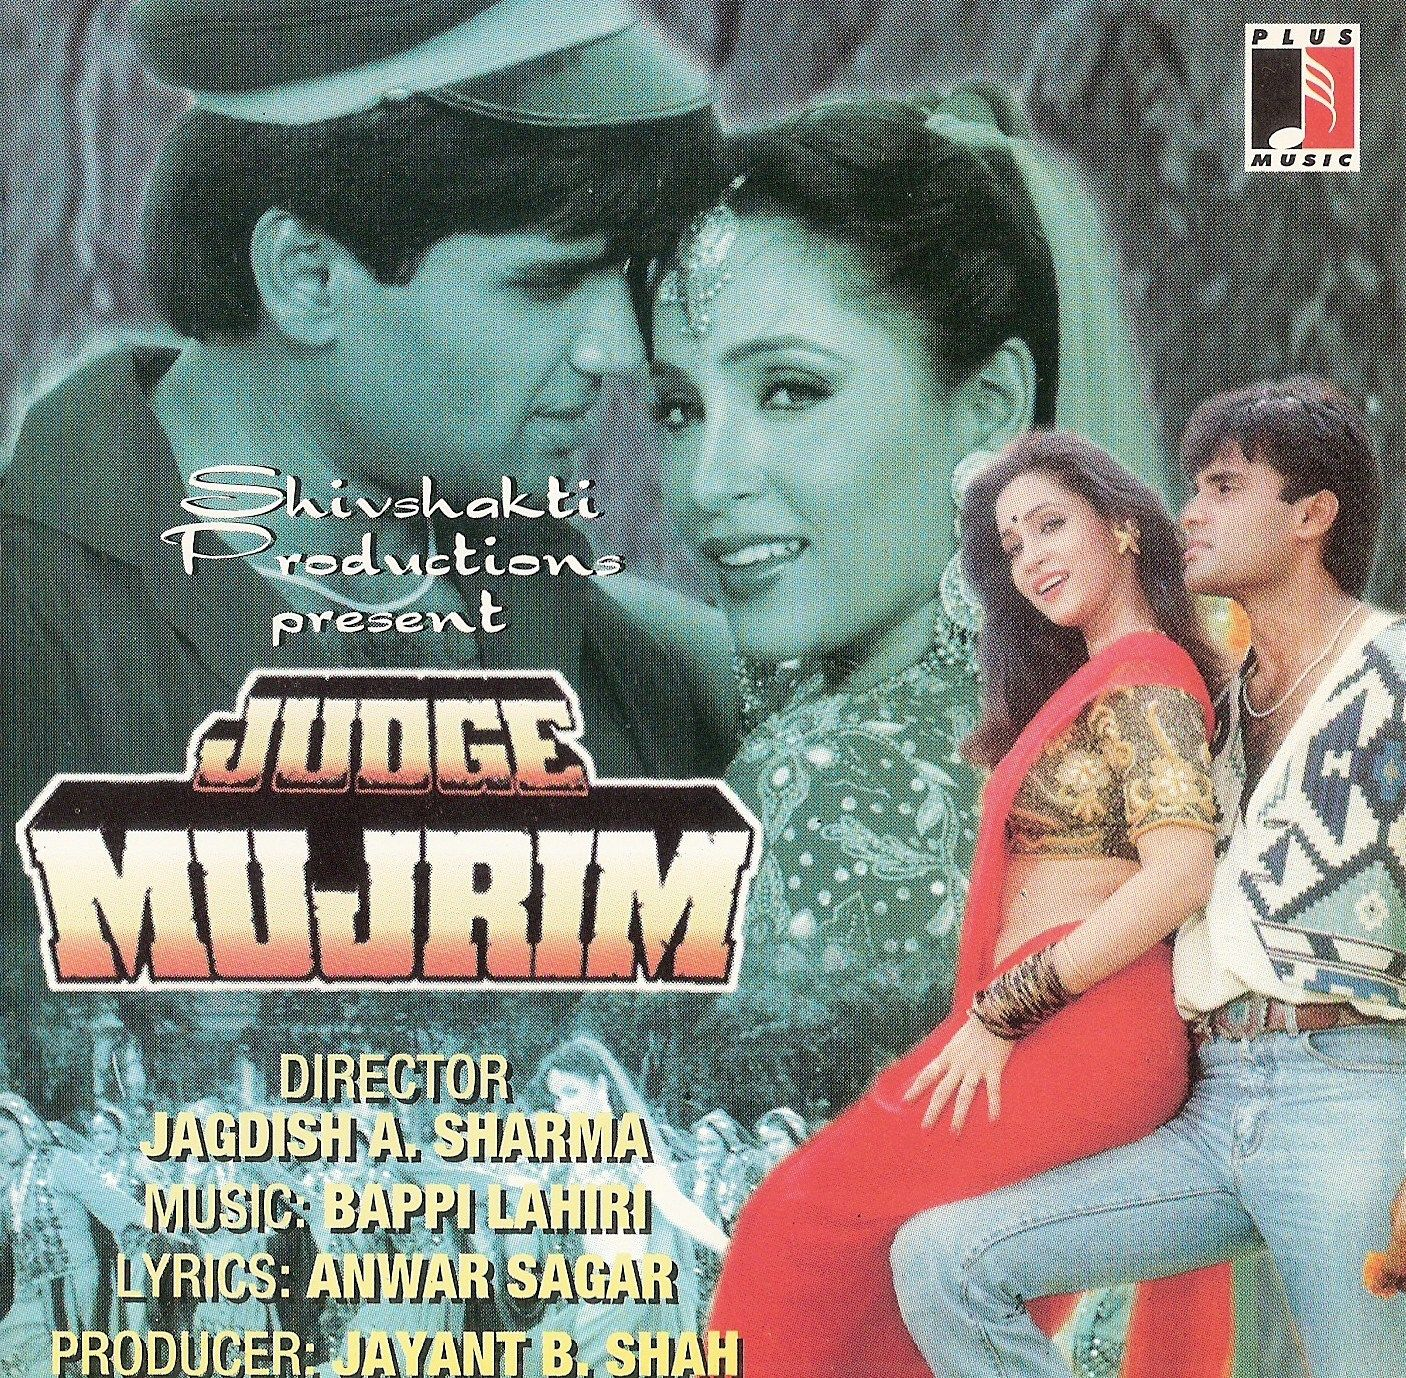 Judge Mujrim 1997 Mp3 Vbr 320kbps Songs Bollywood Songs Songs